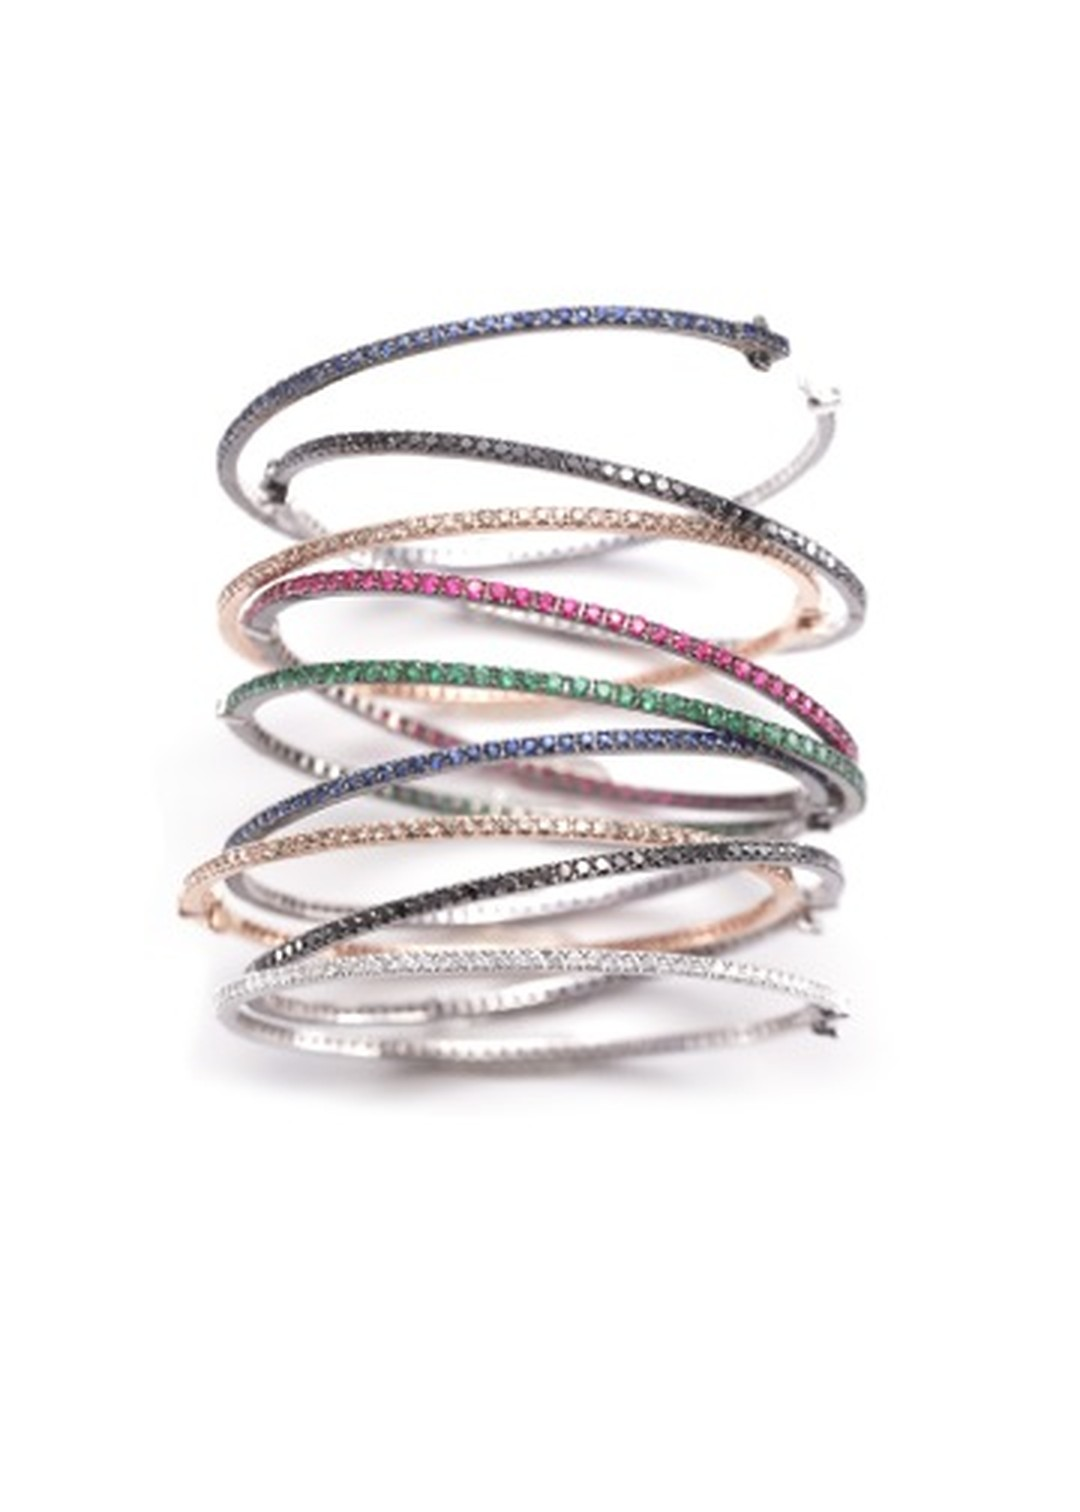 Nam Cho 1.00ct bangles featuring black, champagne and white diamonds as well as colored sapphires, rubies and emeralds, available in white or pink gold (from $4,570).